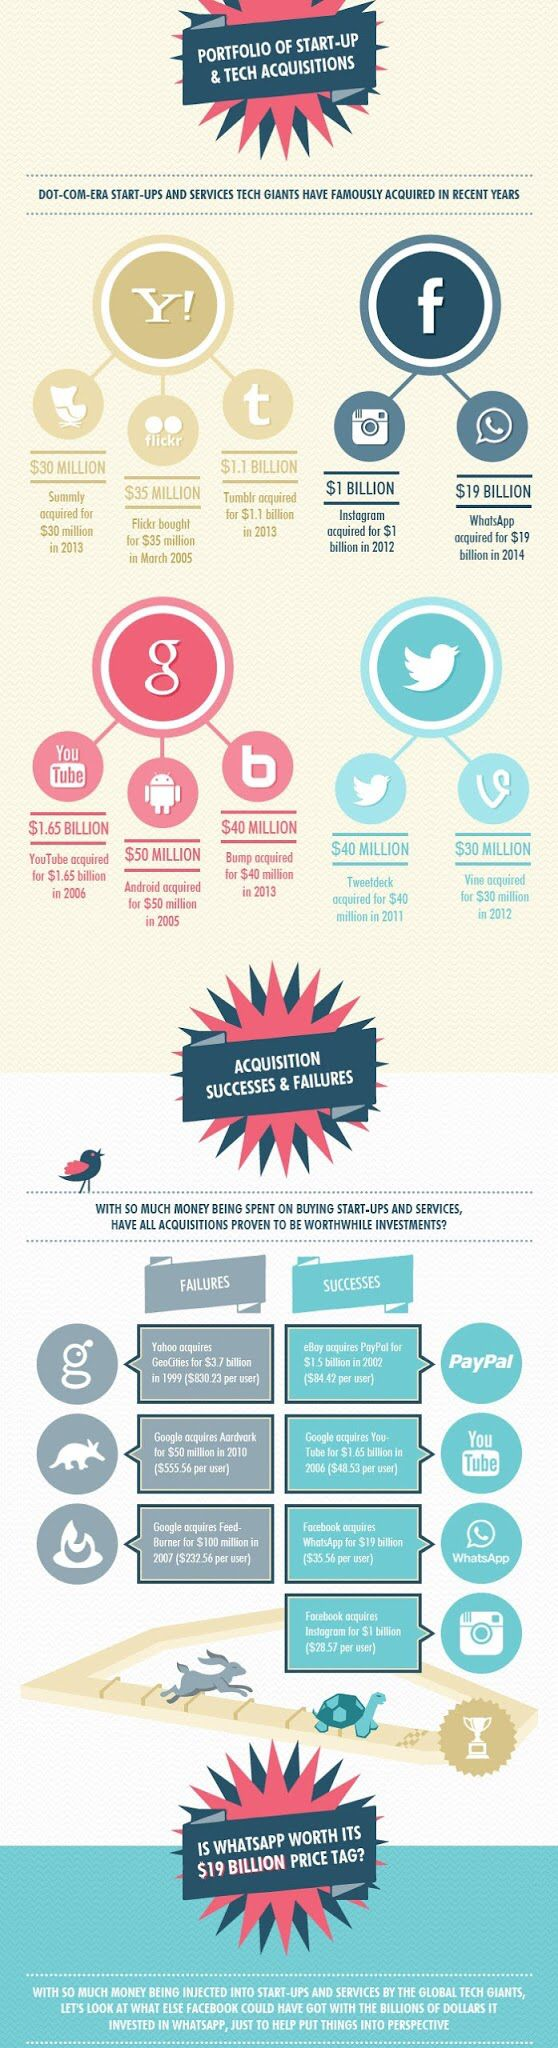 Best and Worst Acquisitions in the Area of Social Media  #socialmedia #acquisitions #sm